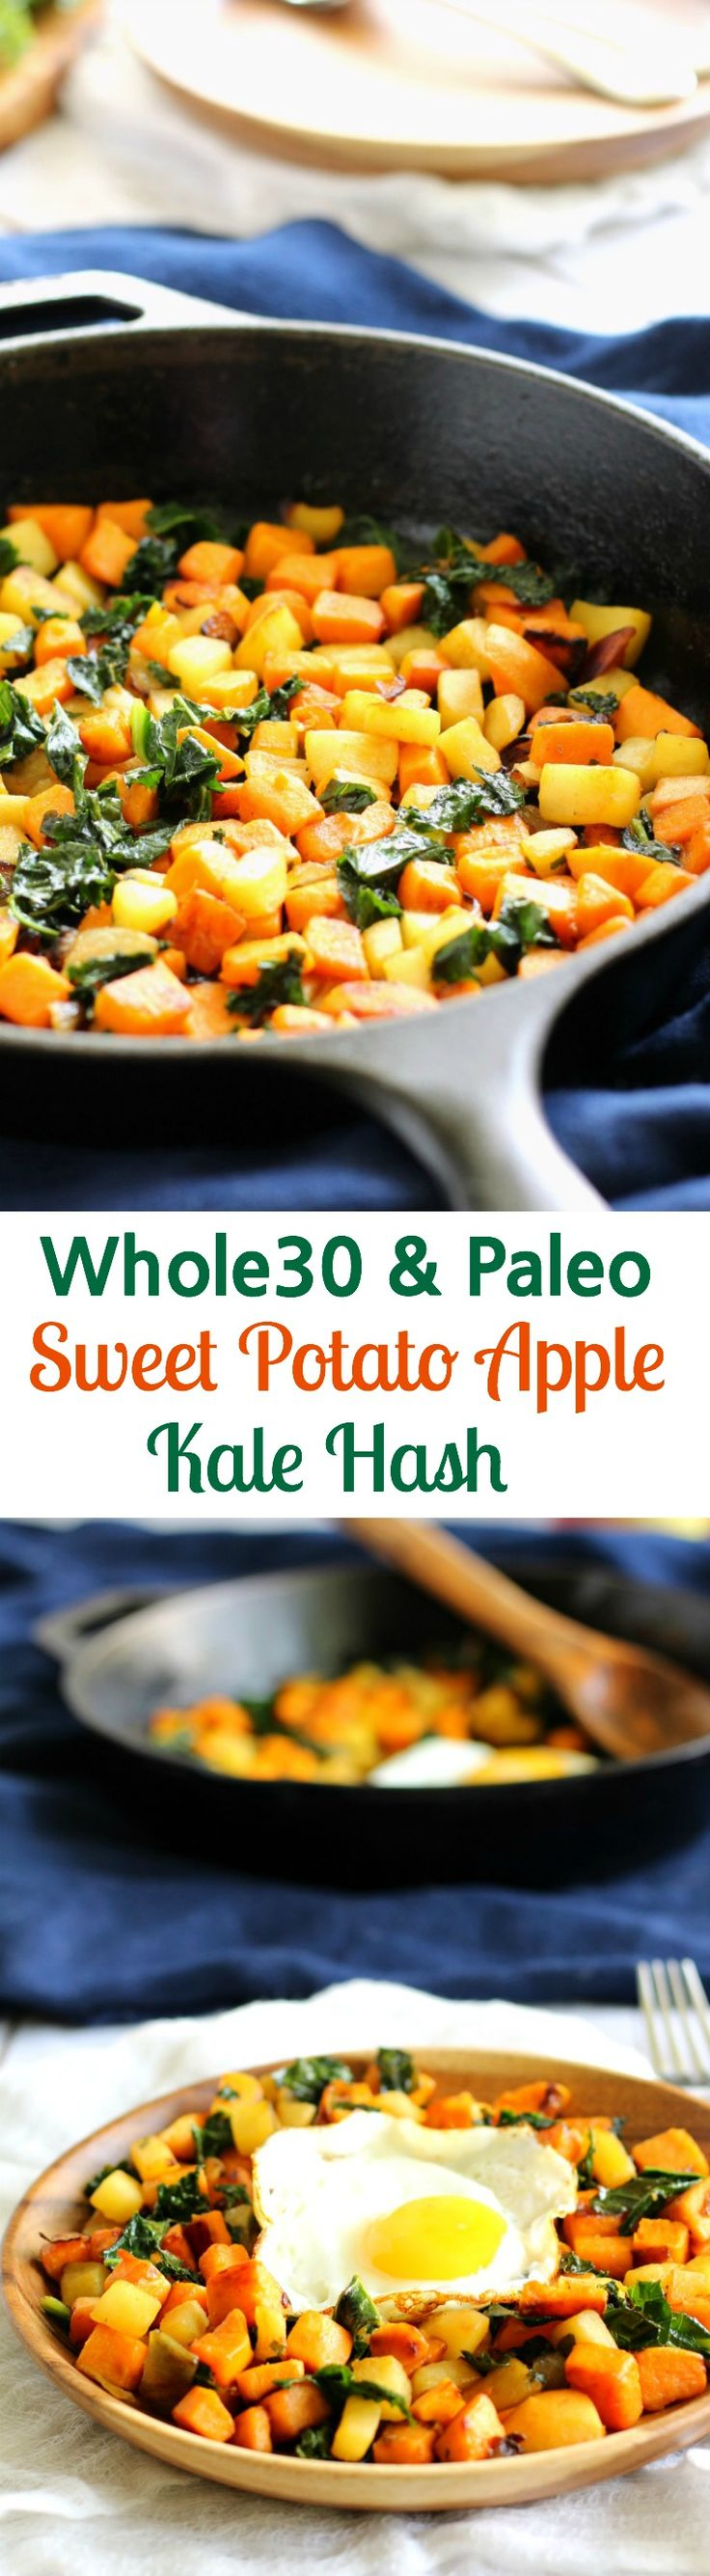 Whole30 and Paleo Sweet Potato Apple and Kale hash with caramelized onions - serve with or without fried eggs - vegan if you leave out the eggs! Perfect for a healthy meal or side dish